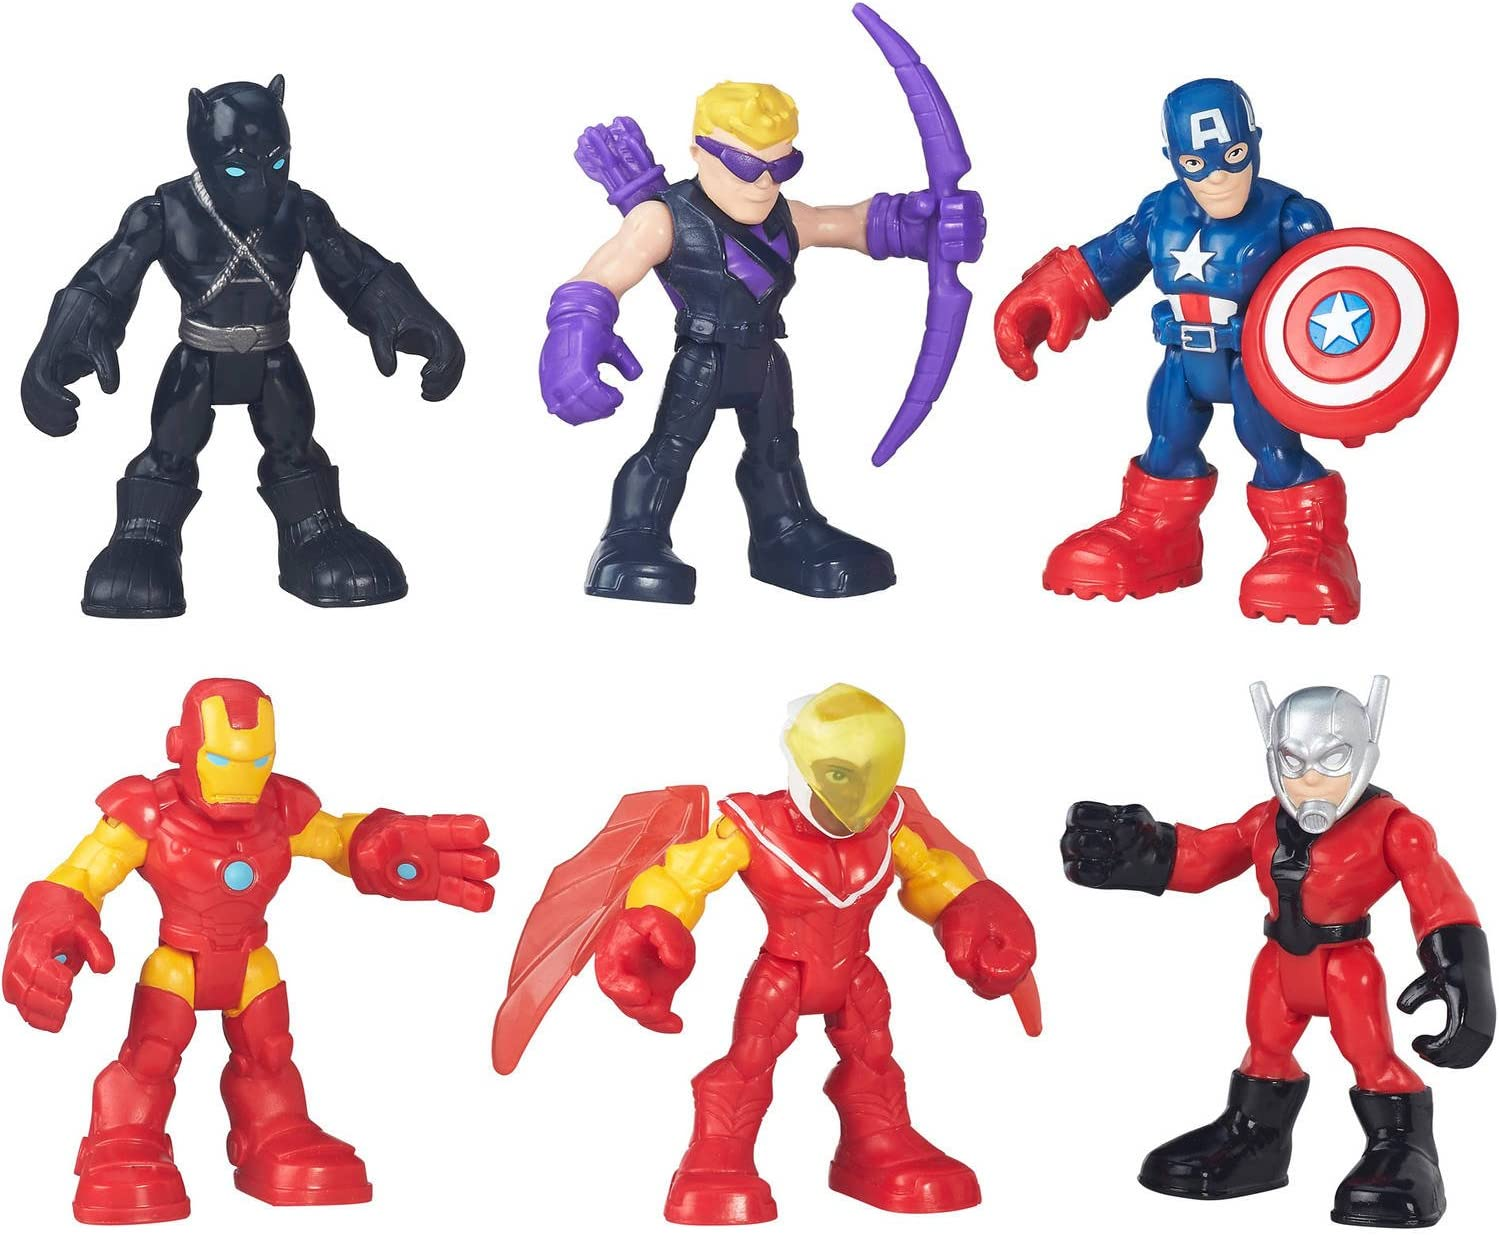 Playskool Marvel Super Hero Avengers Set Action Figure 5 Pieces Pack Kids Gift